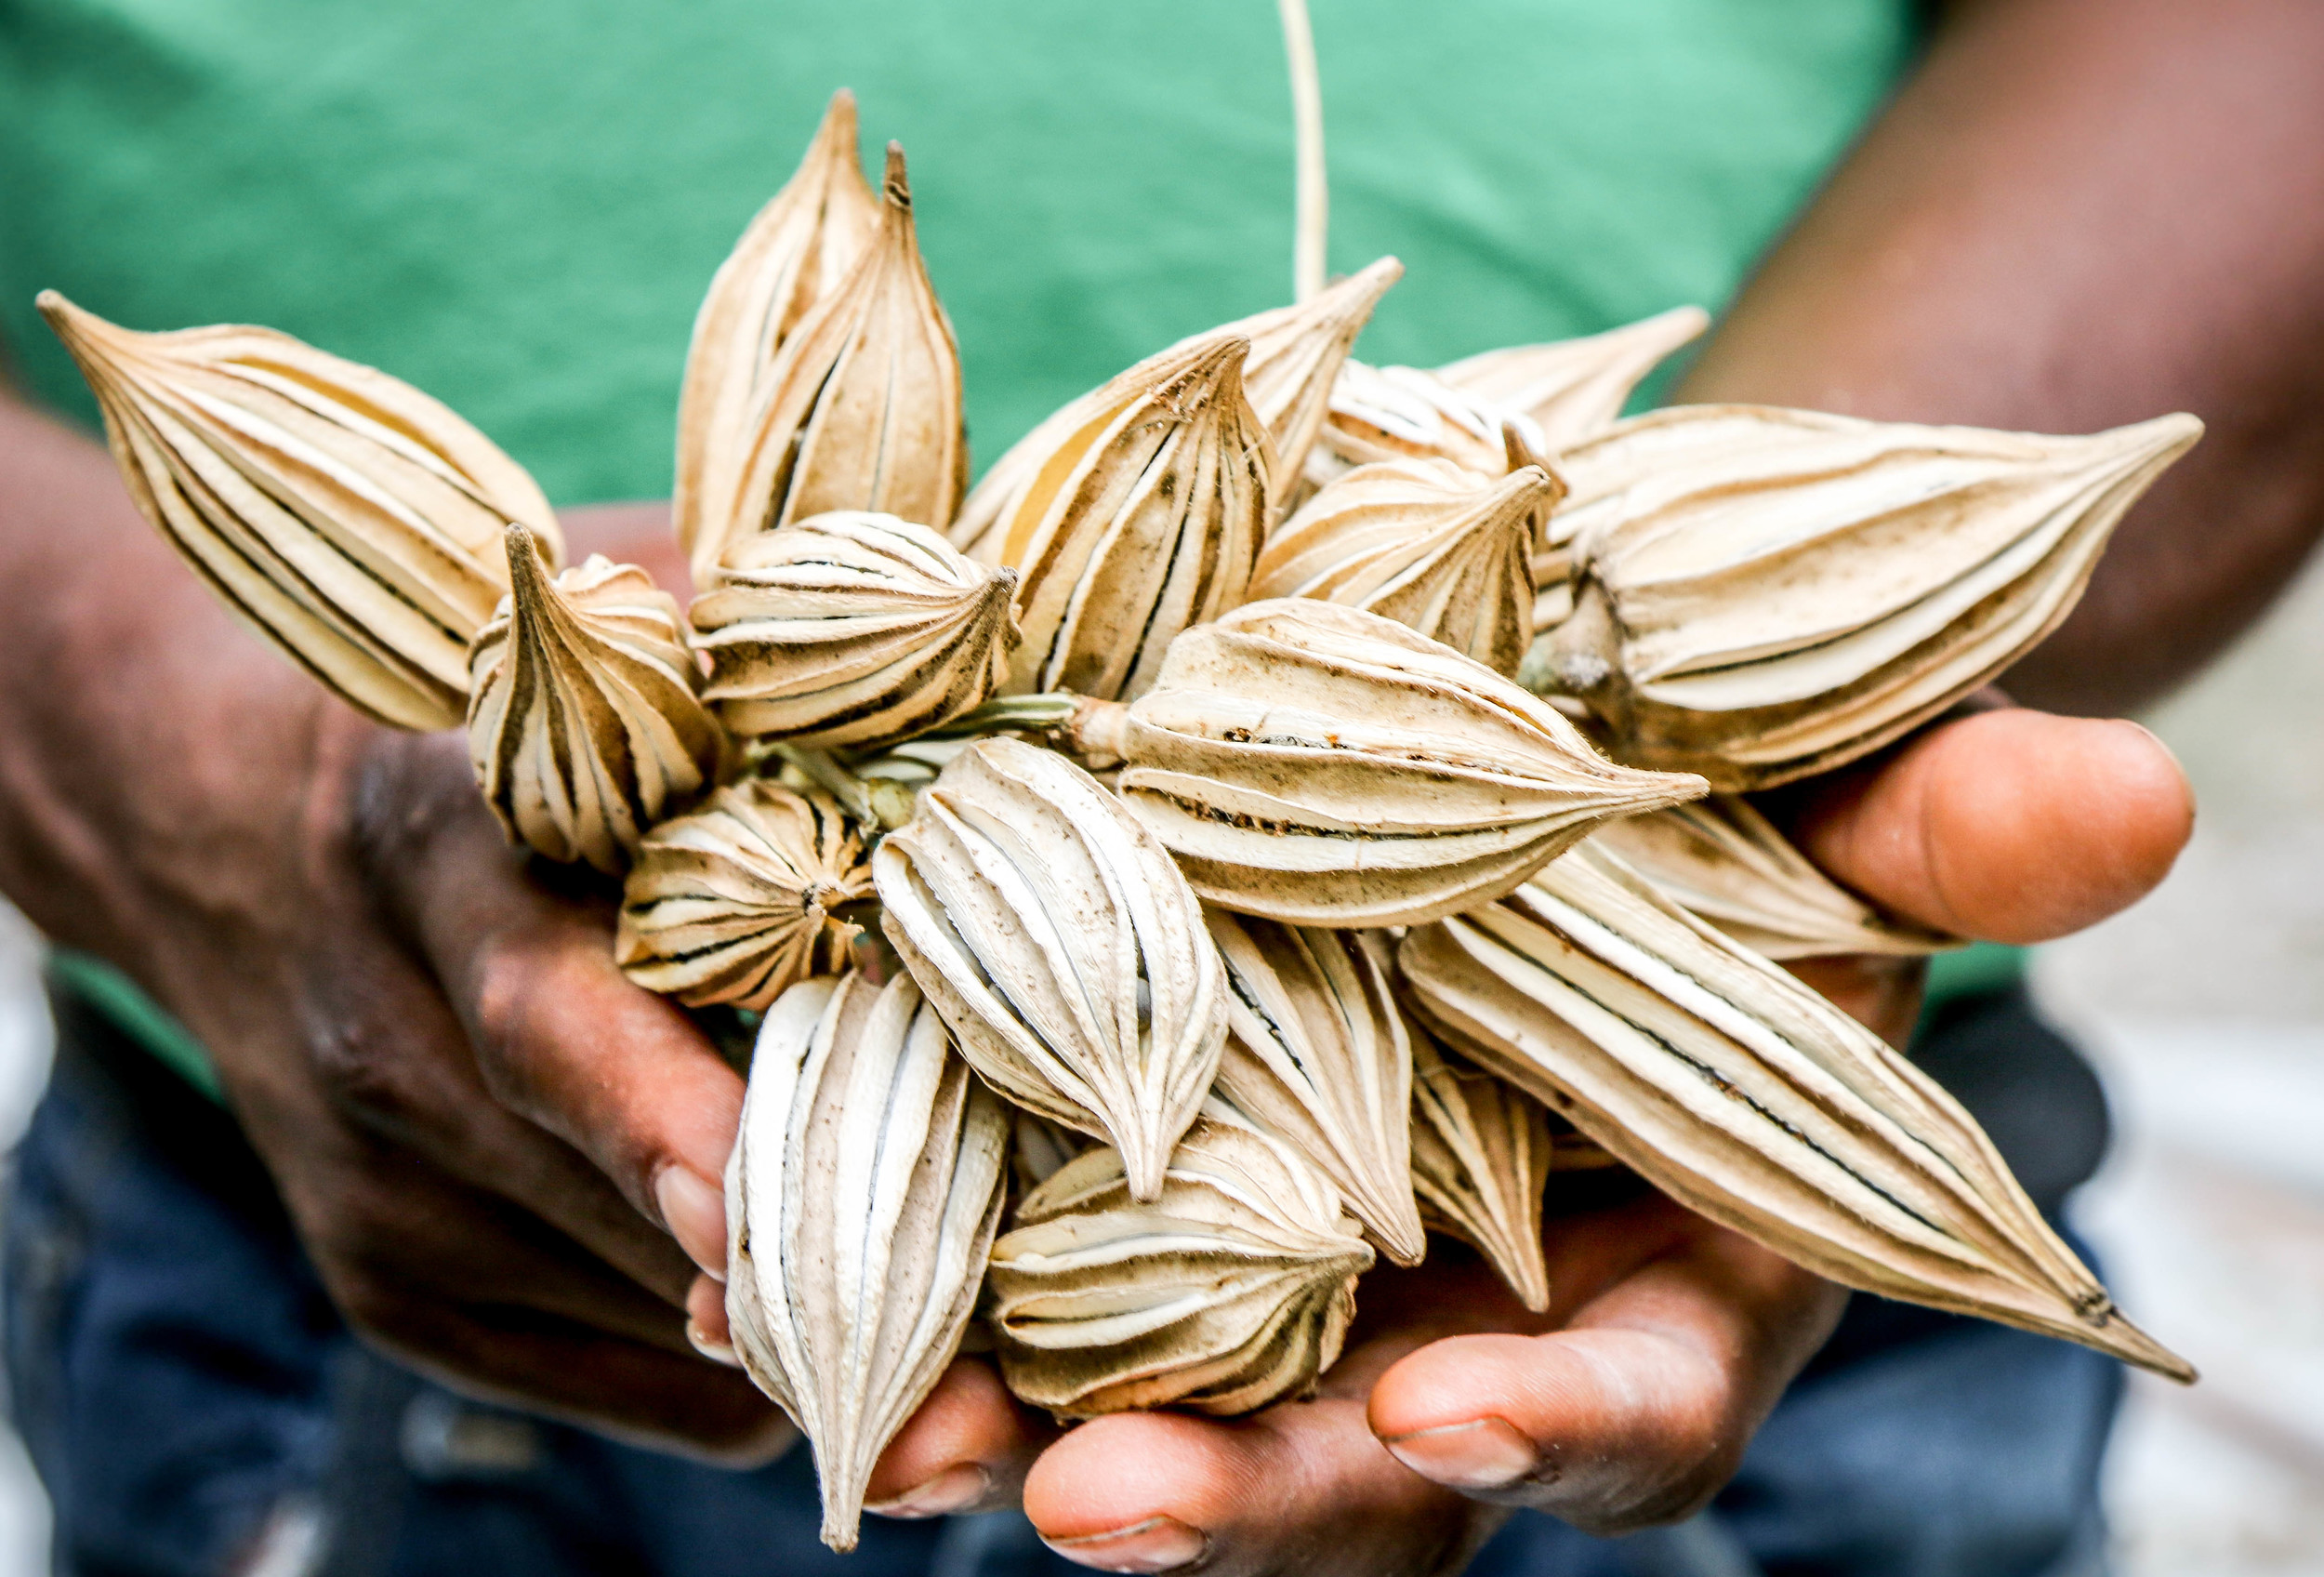 Okra seeds, dried and stored from last year's harvest. The seeds were produced (and held in this picture) by Jean Veny Normil.